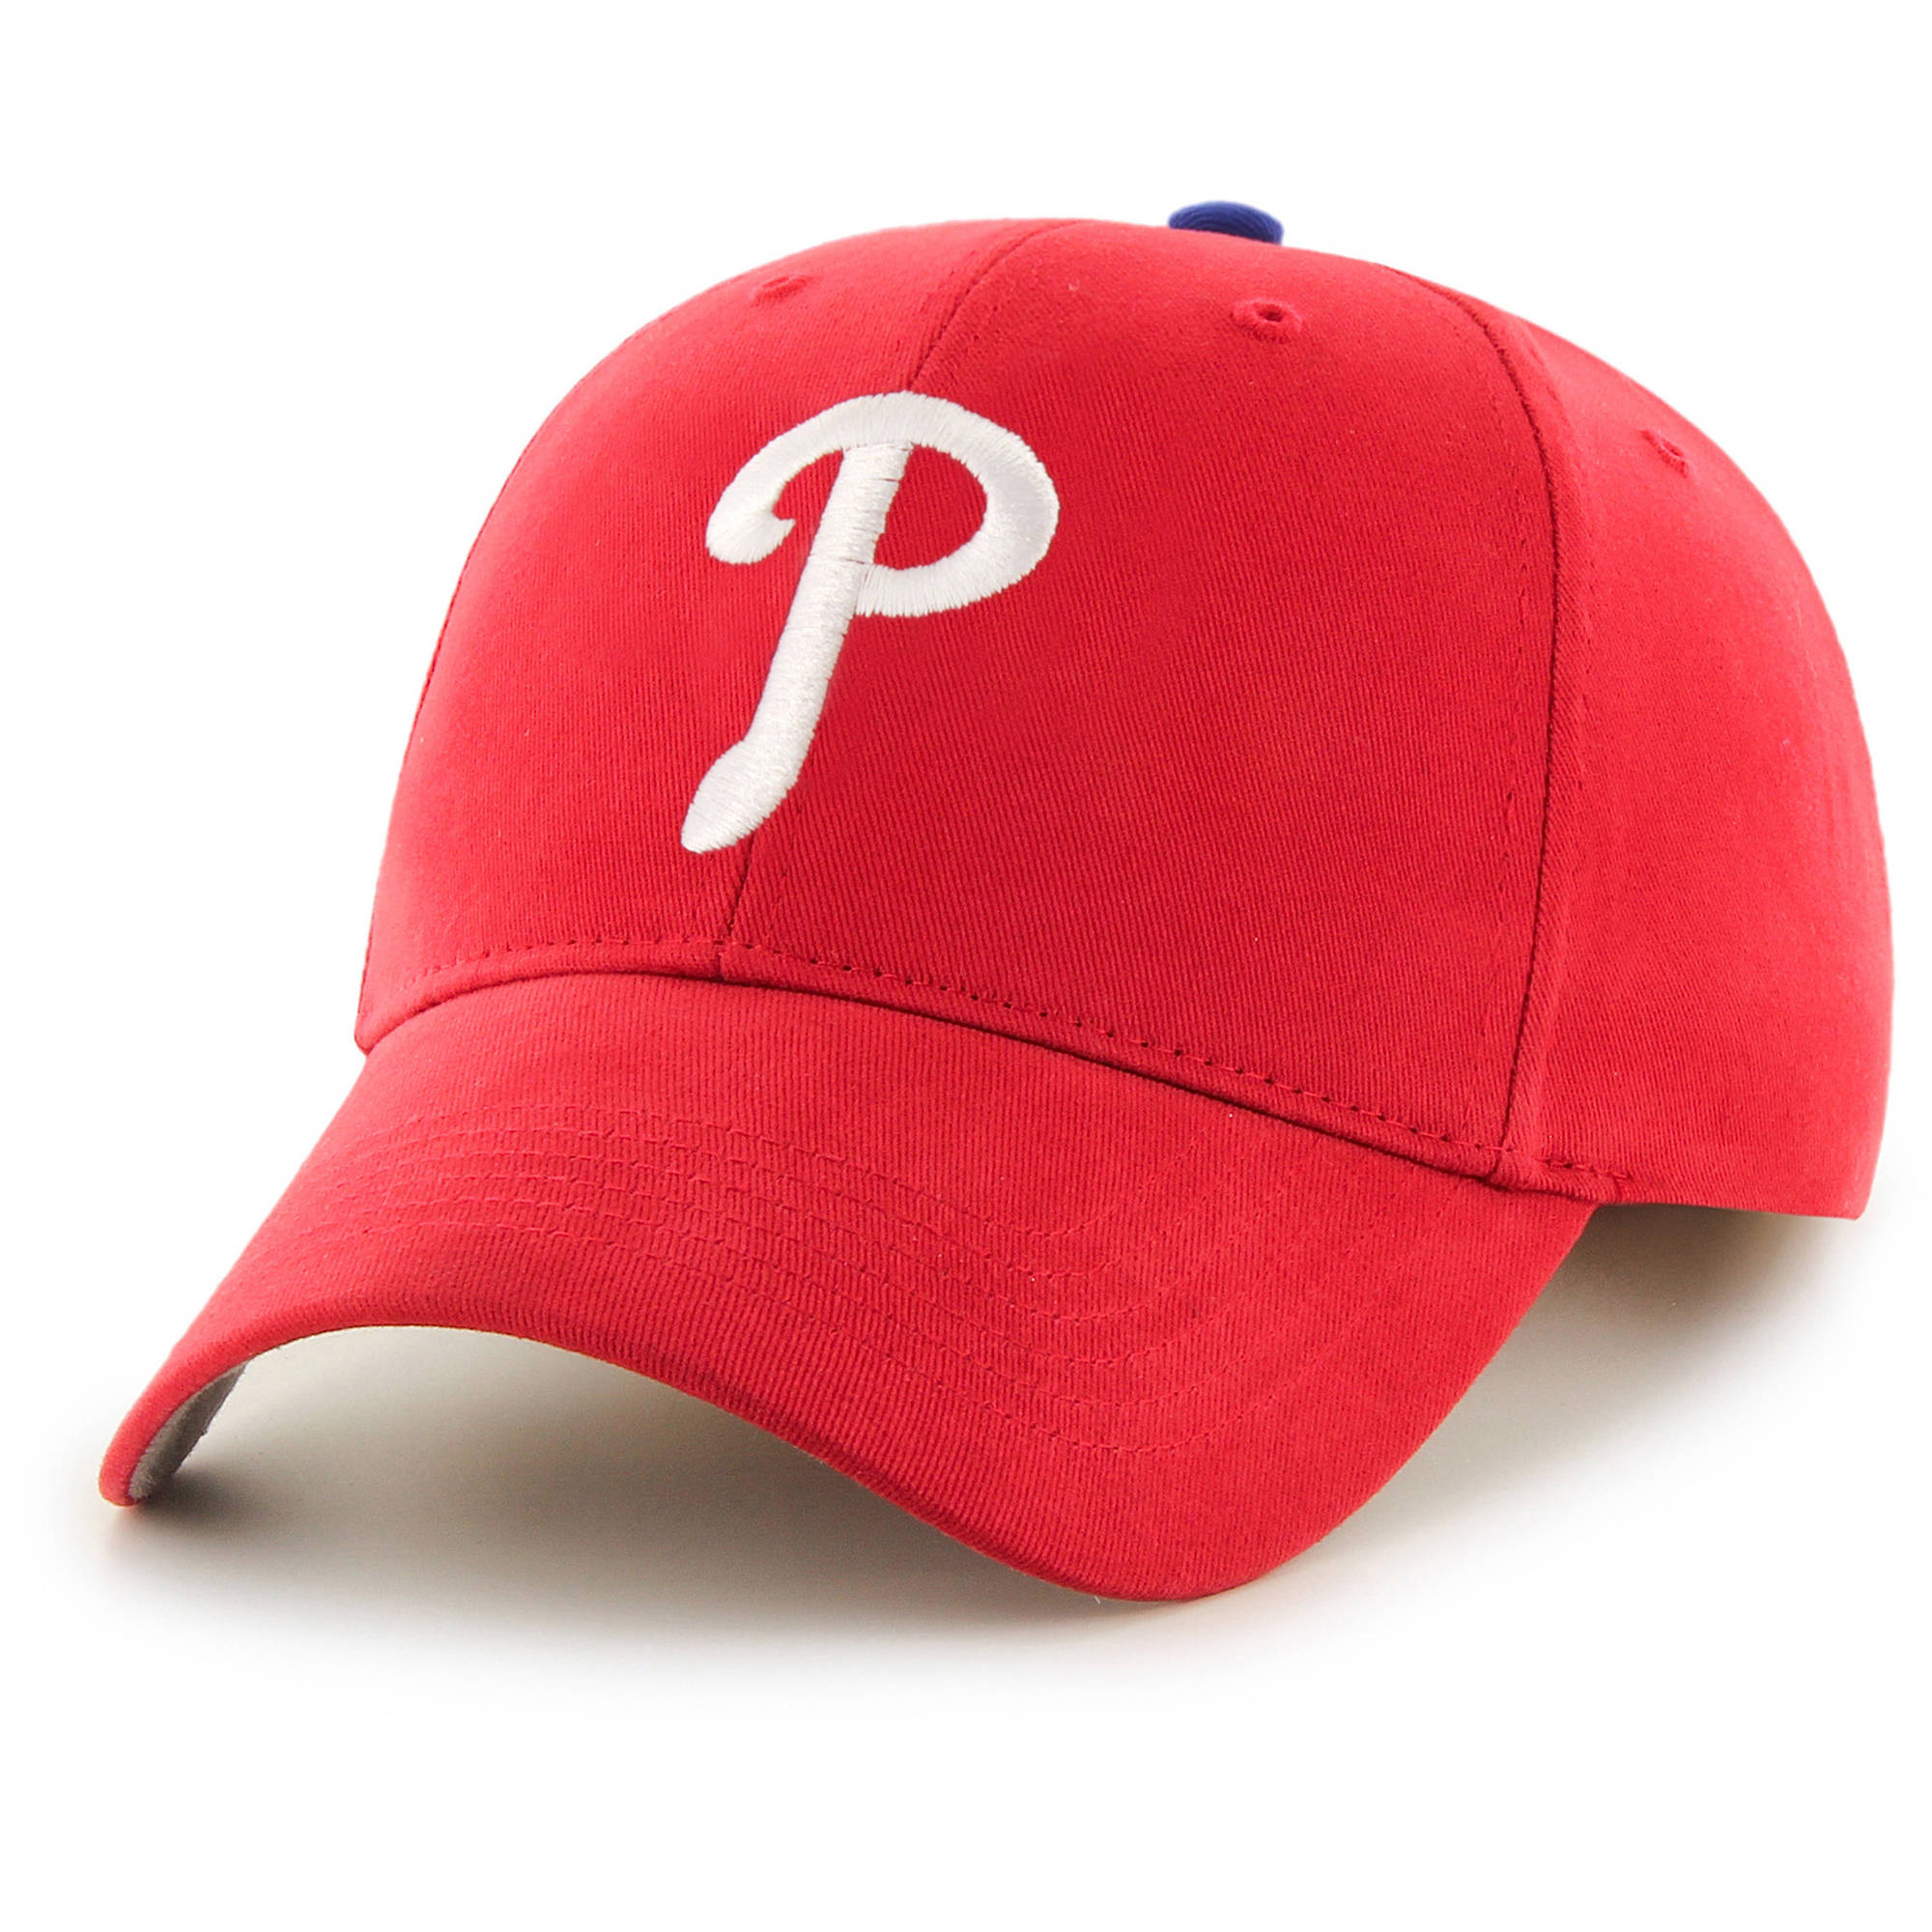 MLB Philadelphia Phillies Basic Cap / Hat by Fan Favorite